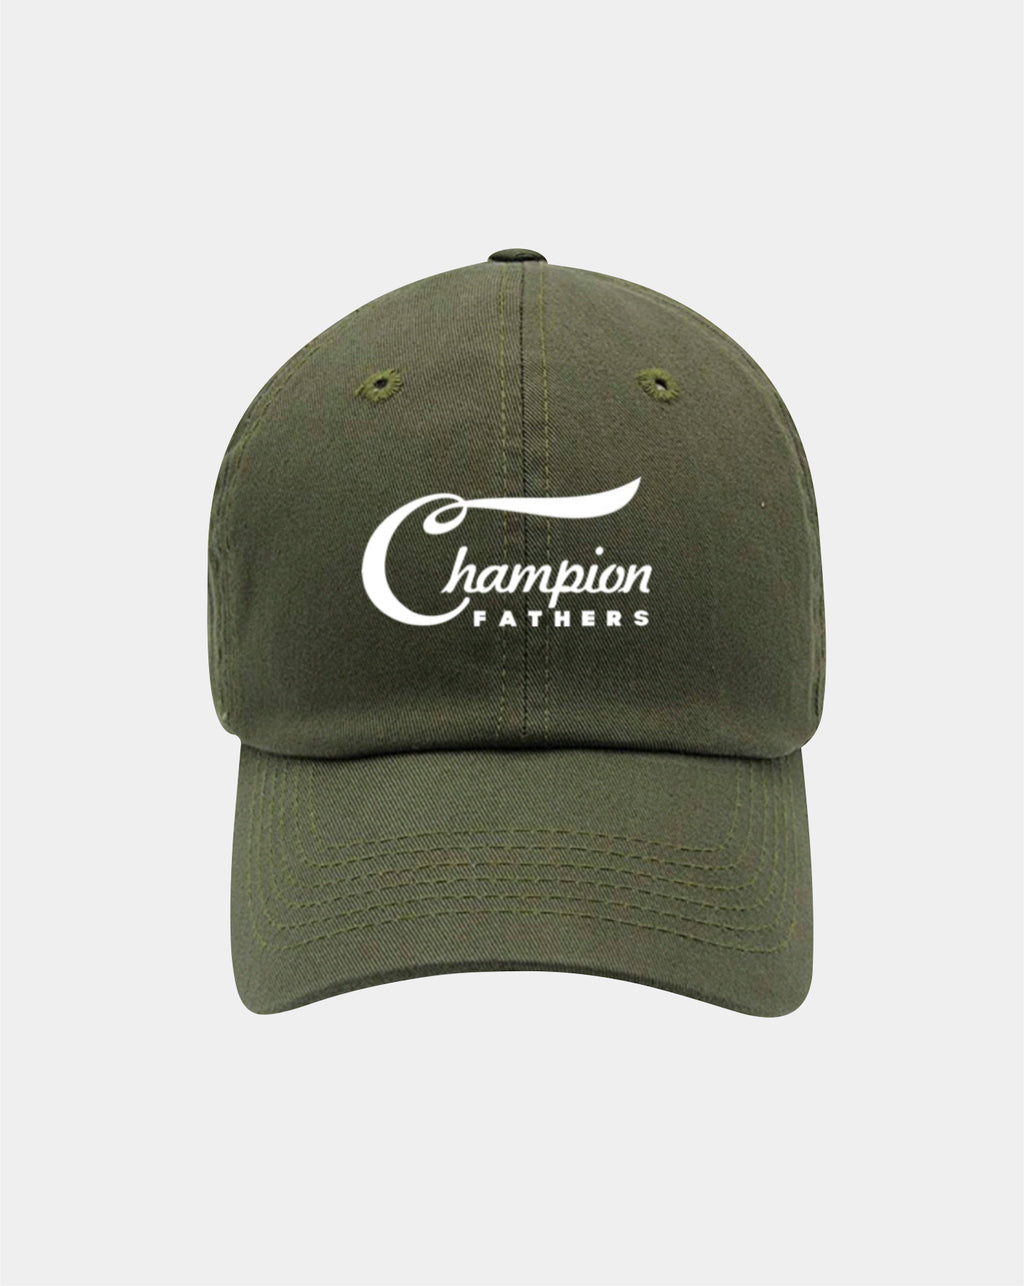 Champion Fathers Dad-Cap